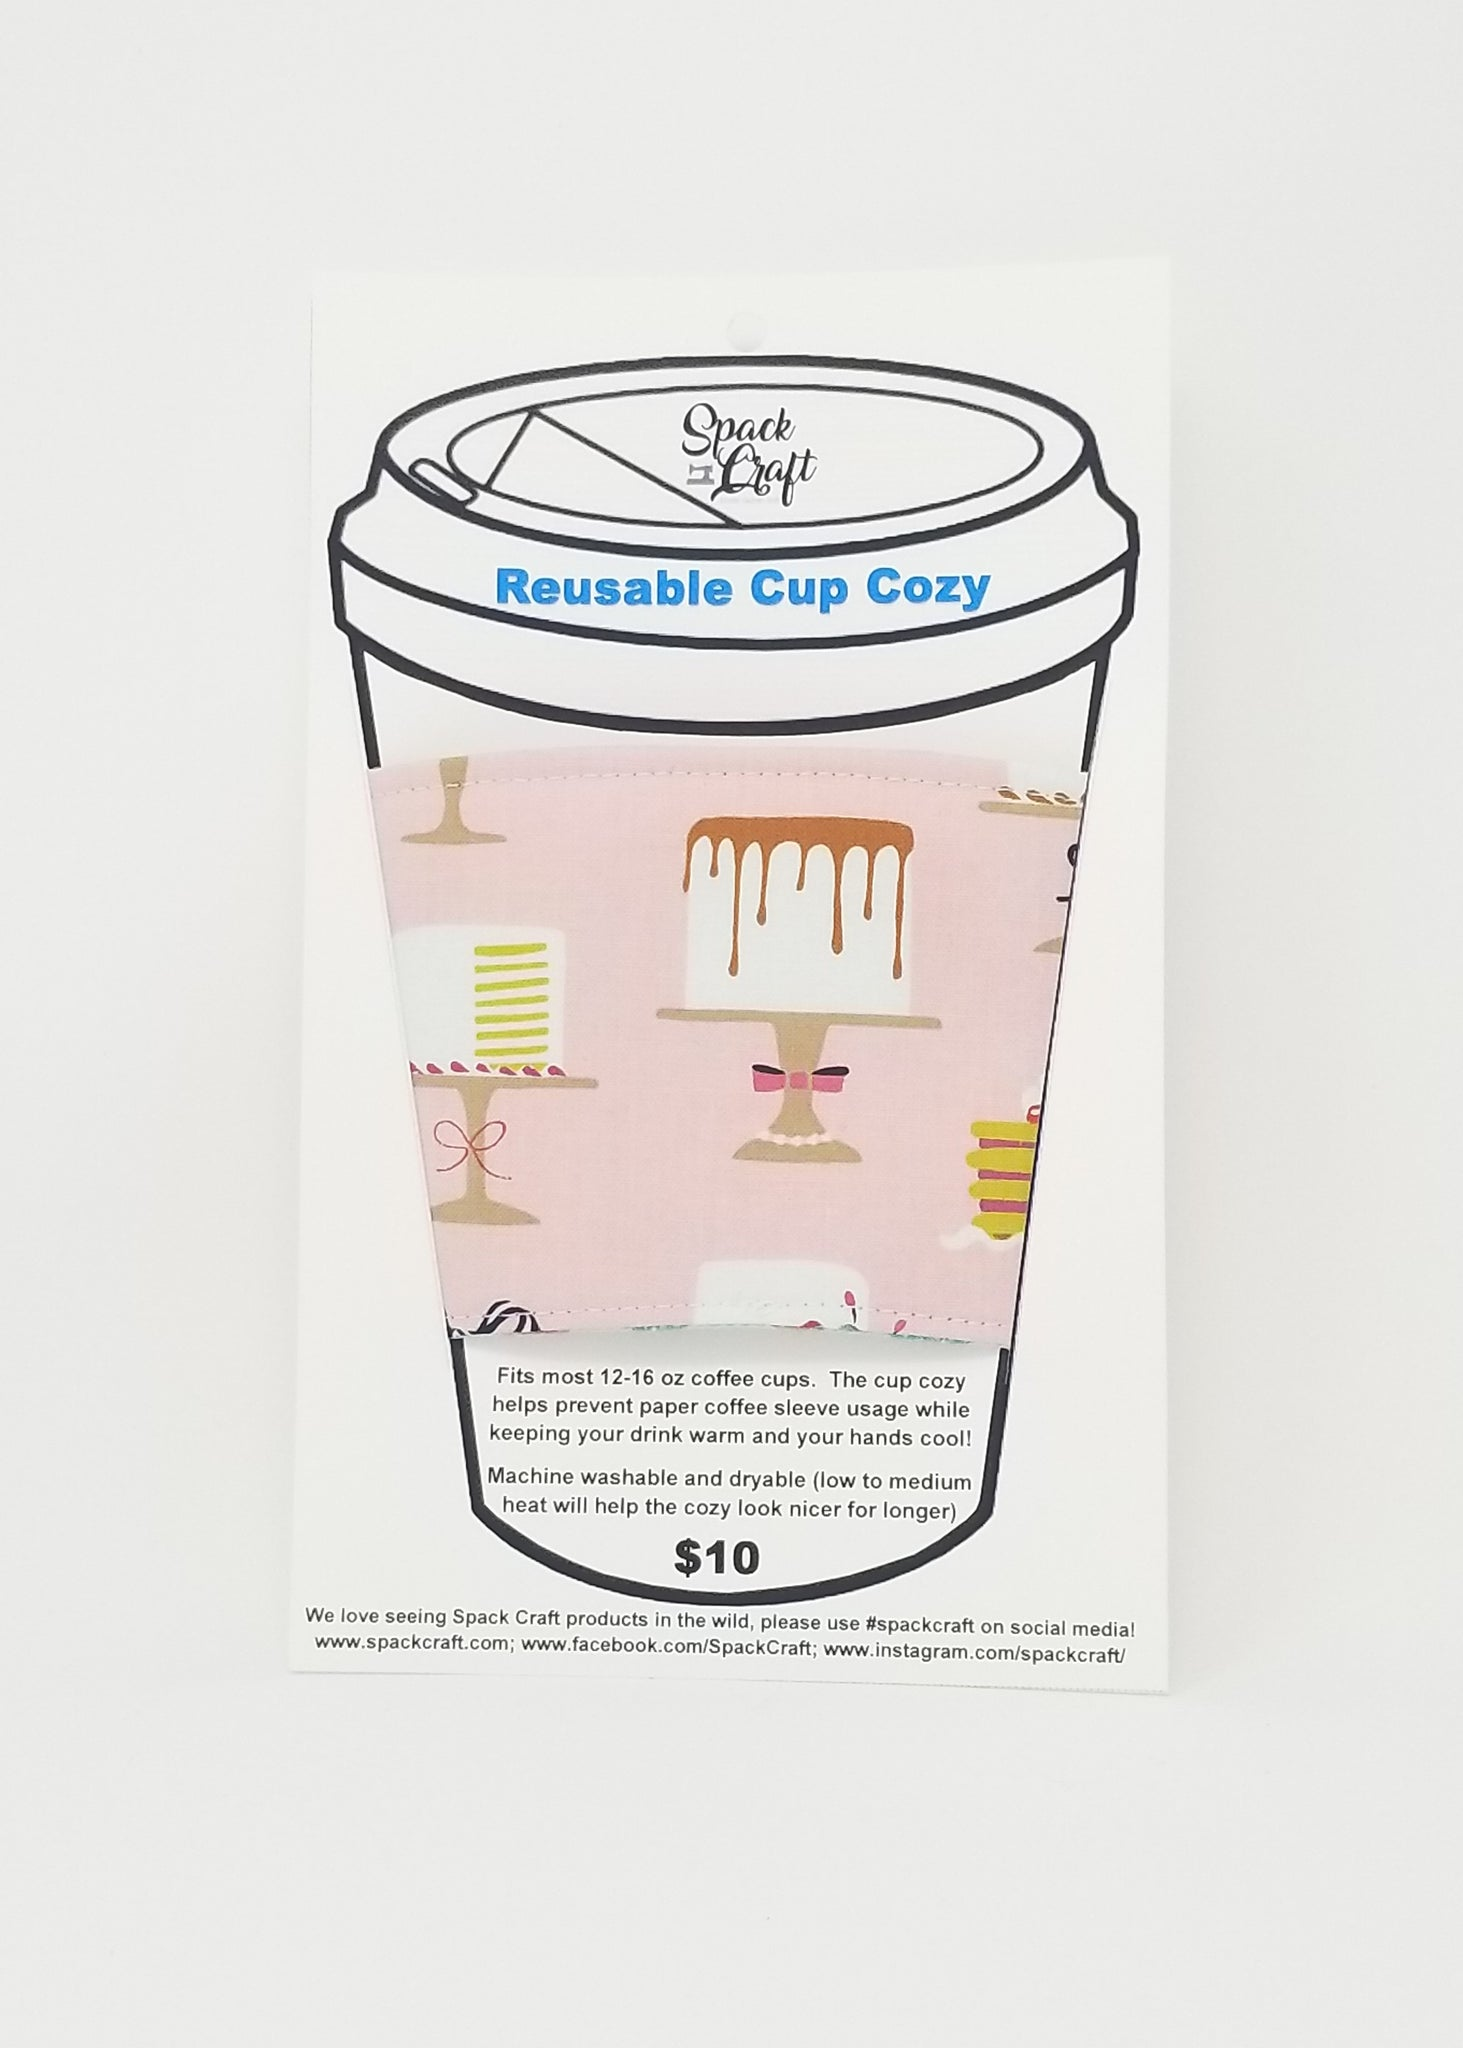 Reusable cup cozy - Sweet Treats in package